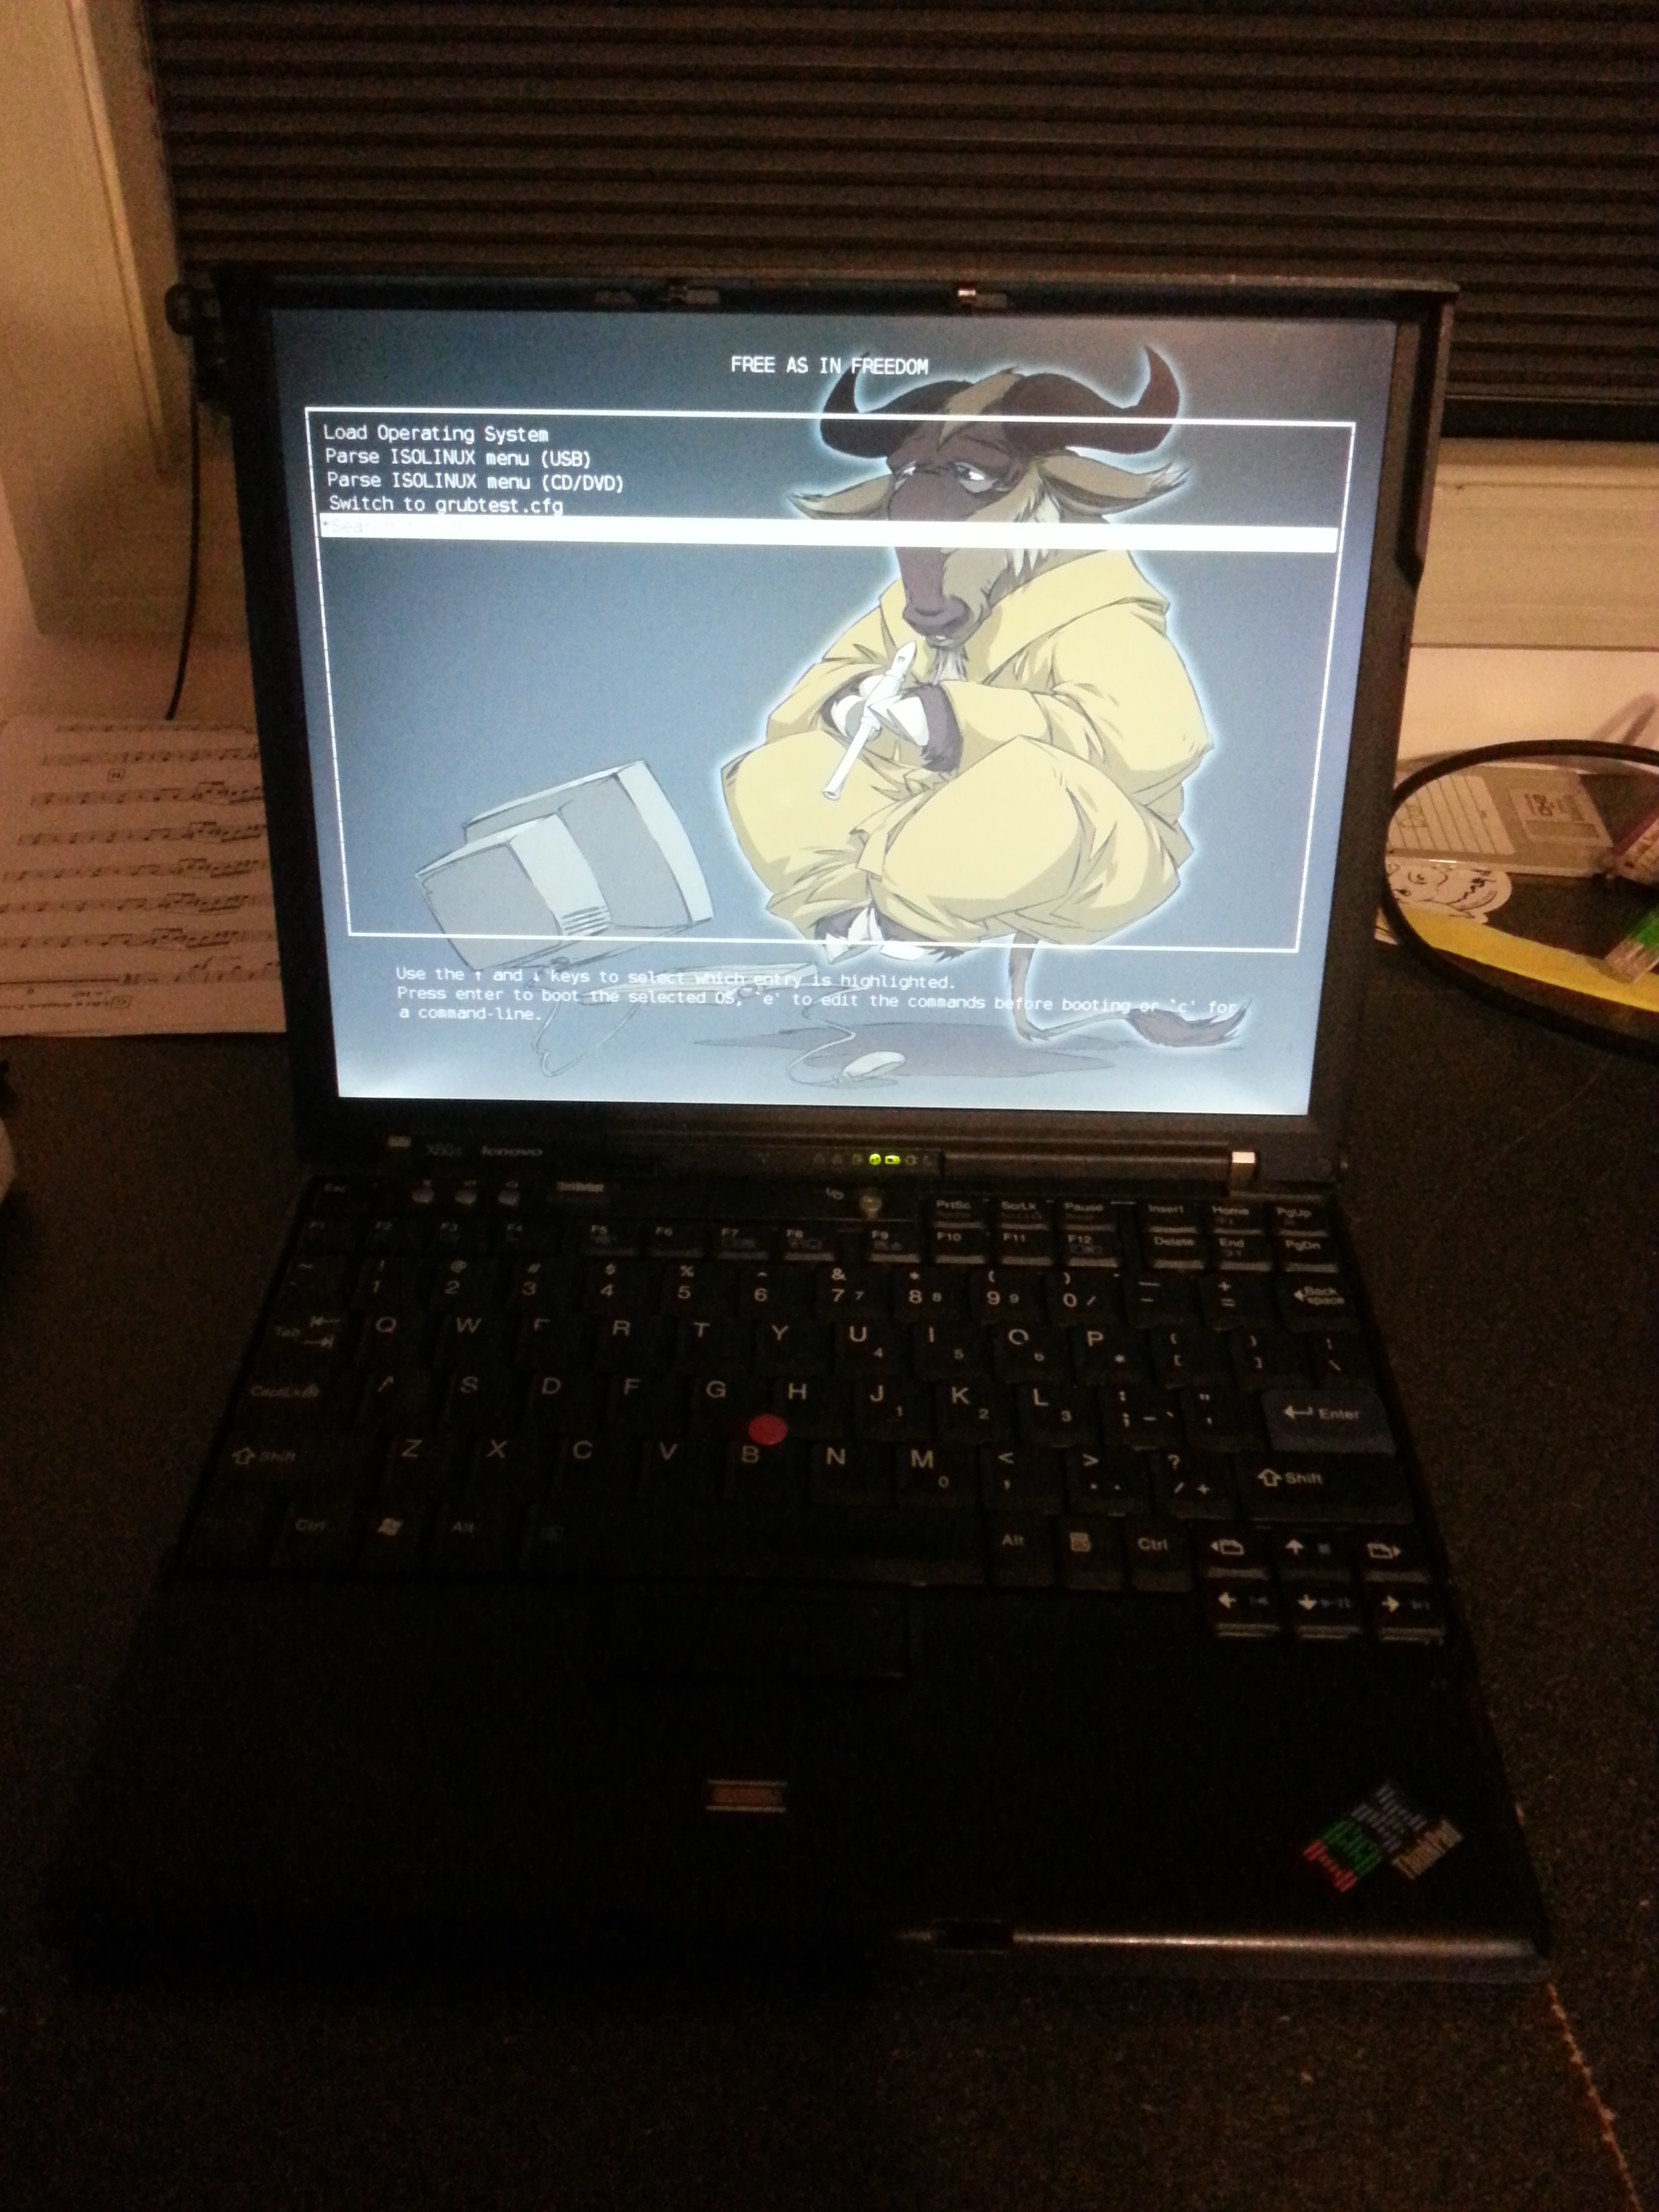 Thinkpad X60s booting libreboot